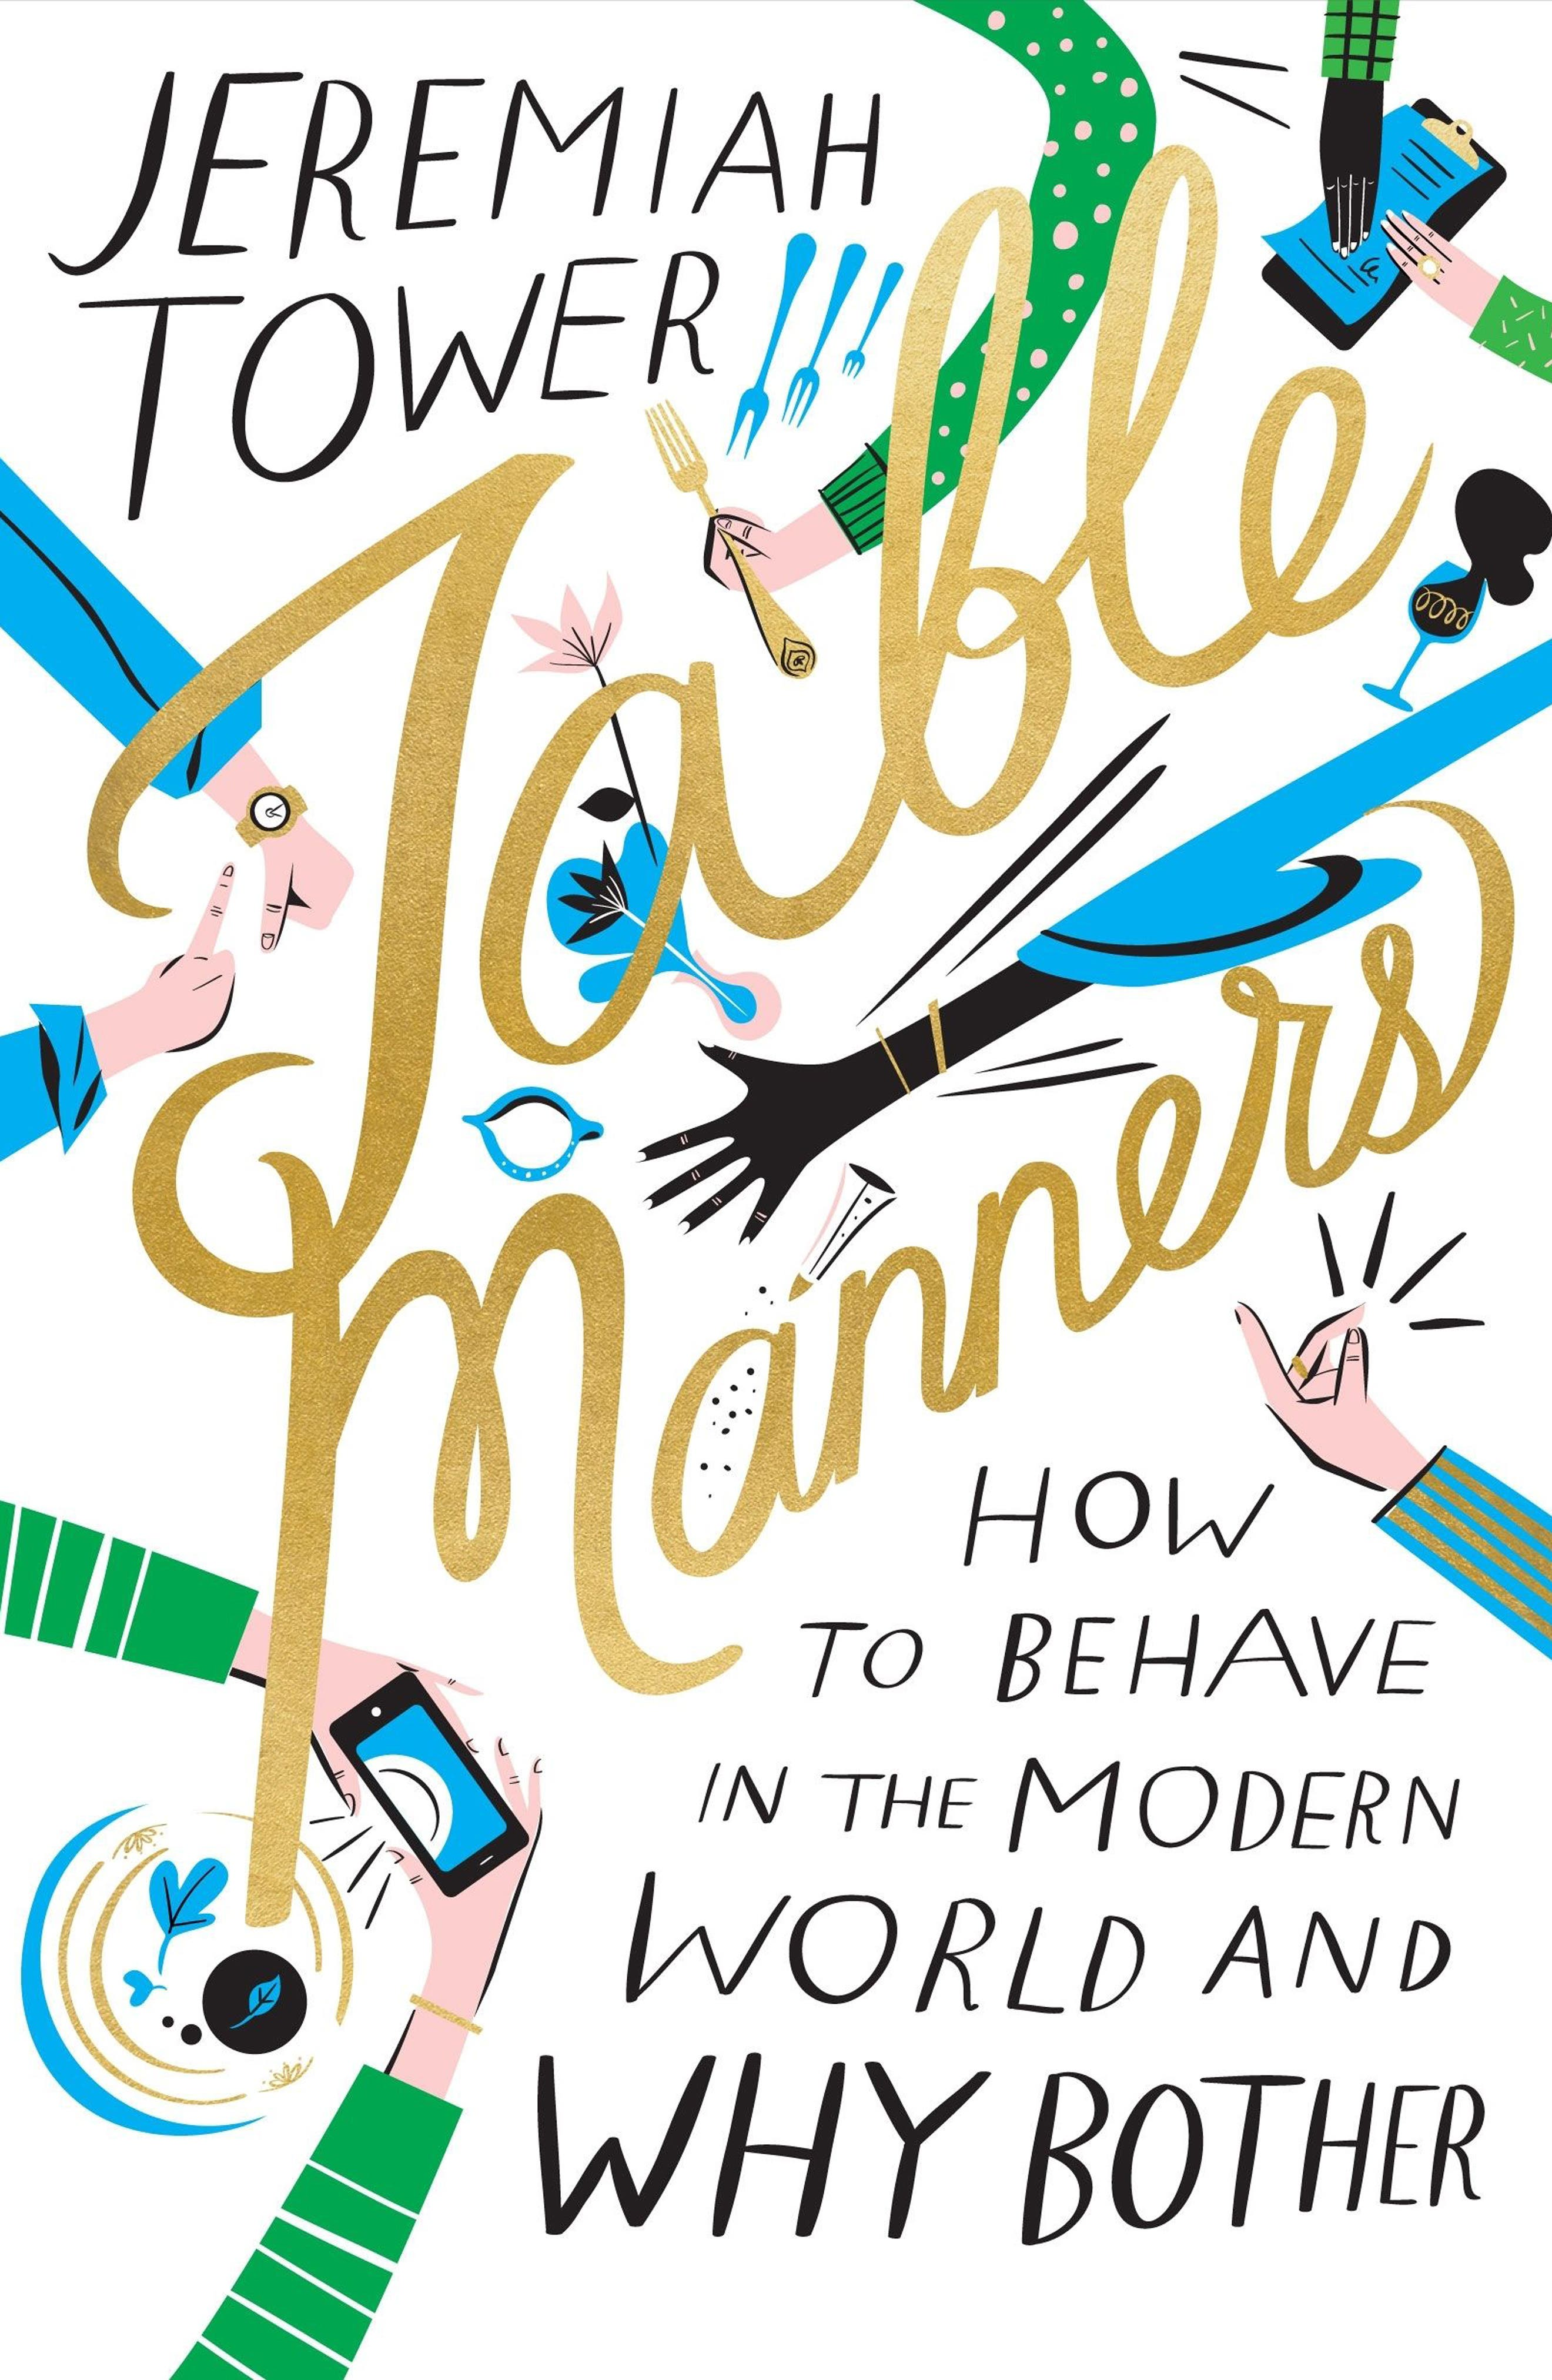 Alternate Image 1 Selected - Table Manners: How to Behave in the Modern World and Why Bother Book